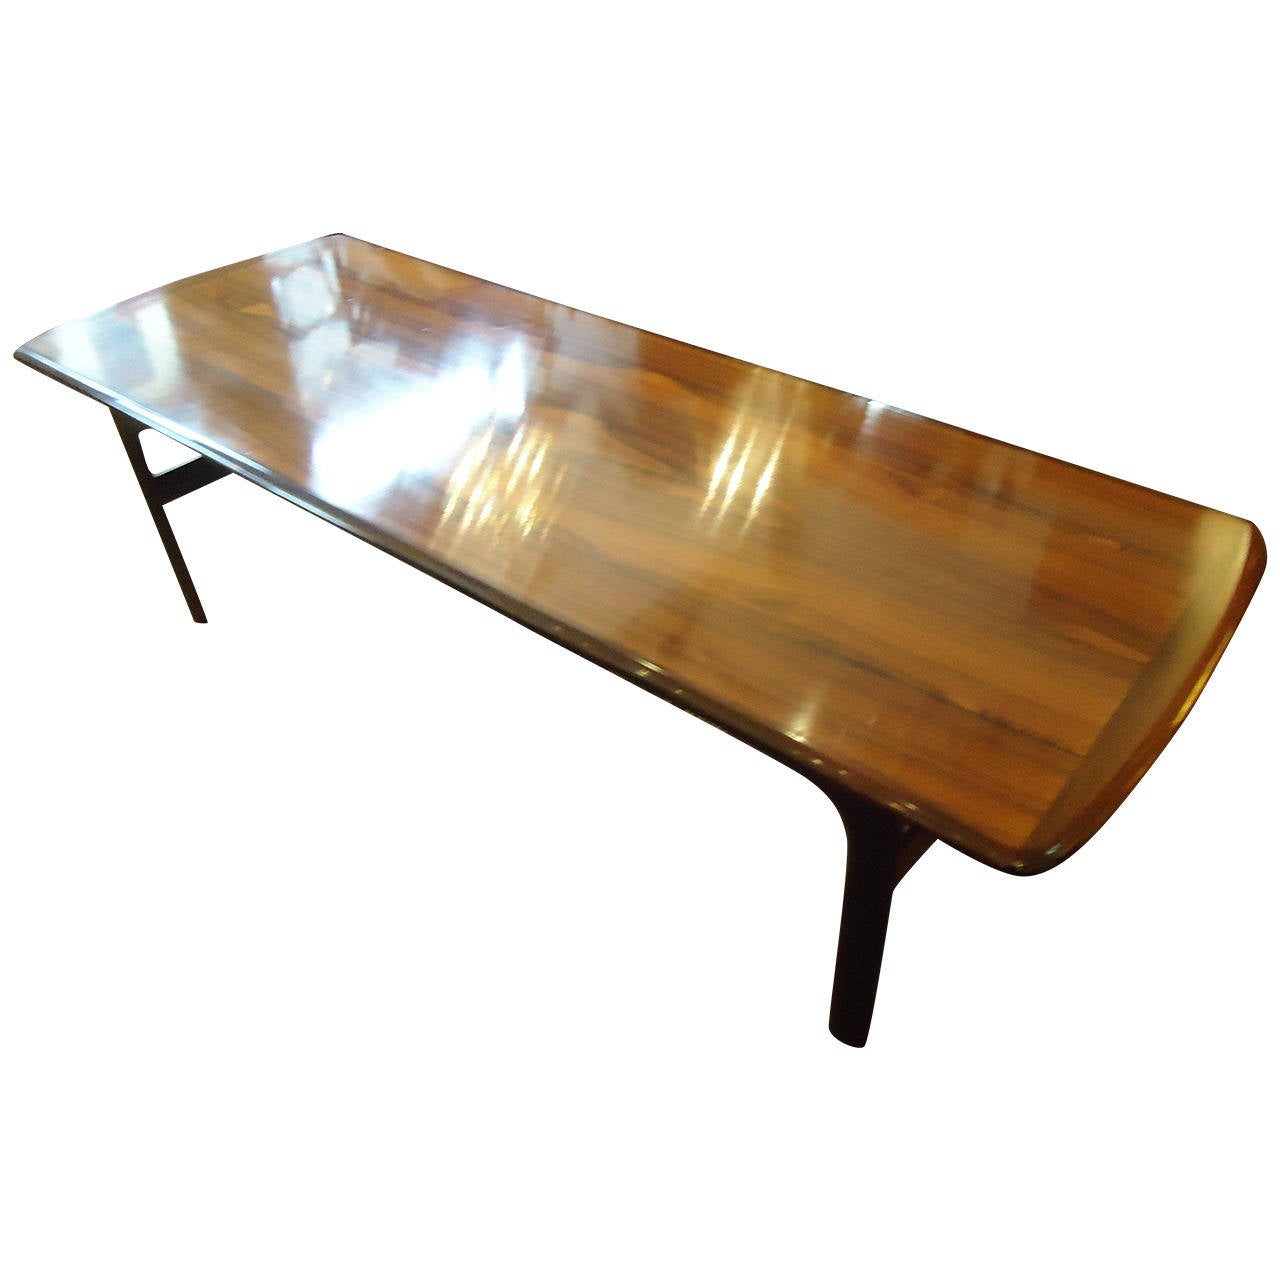 Sleek designer danish modern rosewood coffee table at 1stdibs Sleek coffee table